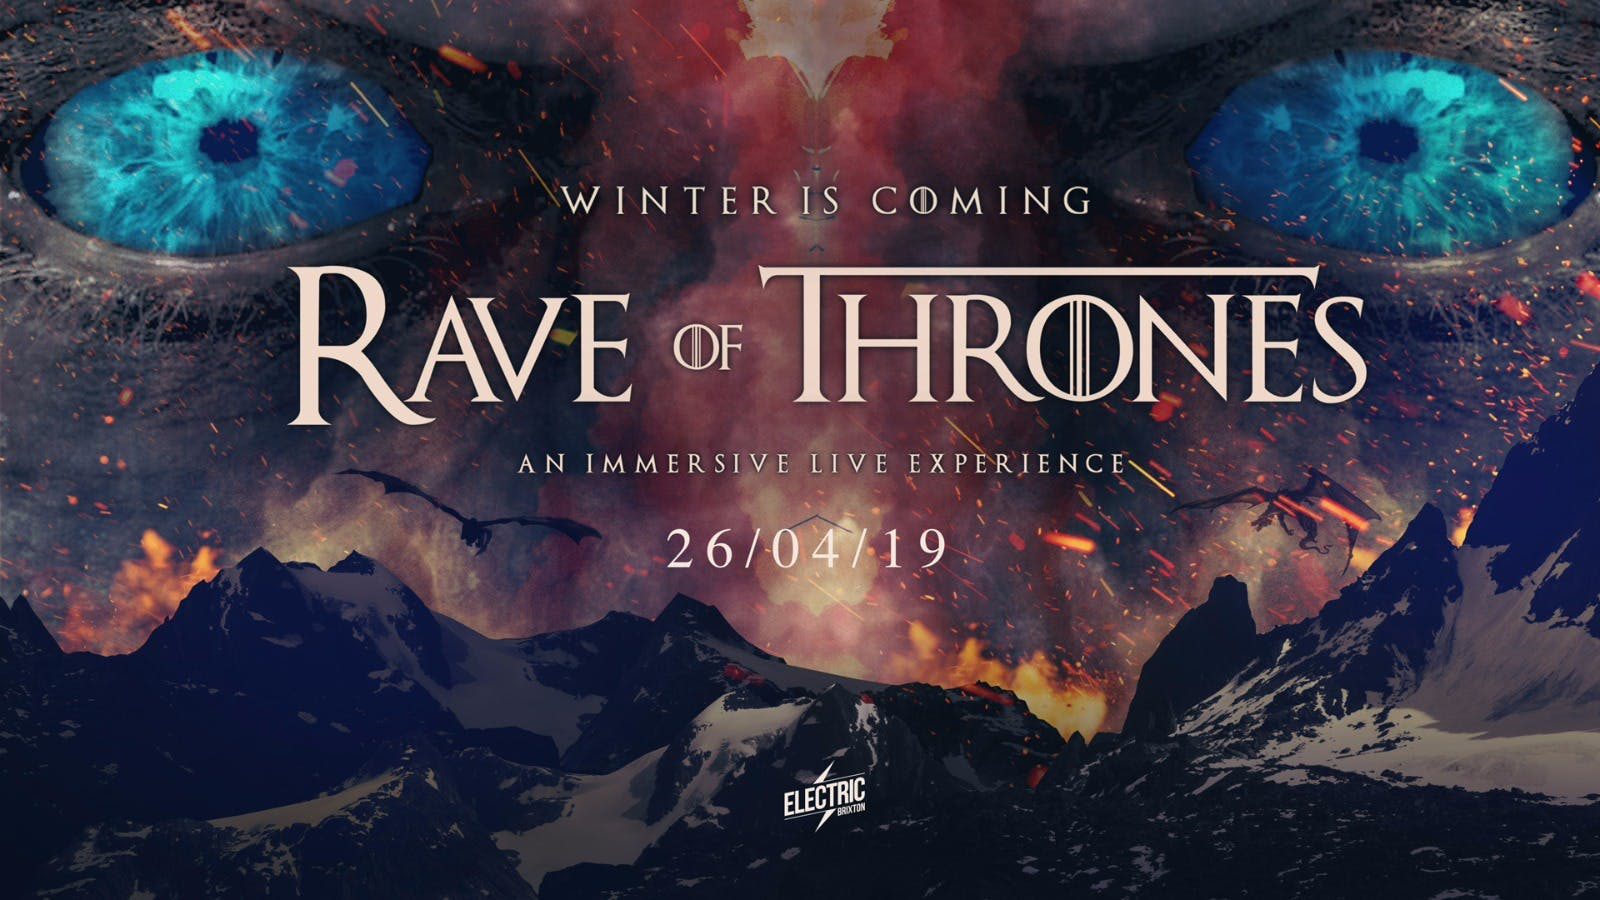 Winter is here: Rave of Thrones London